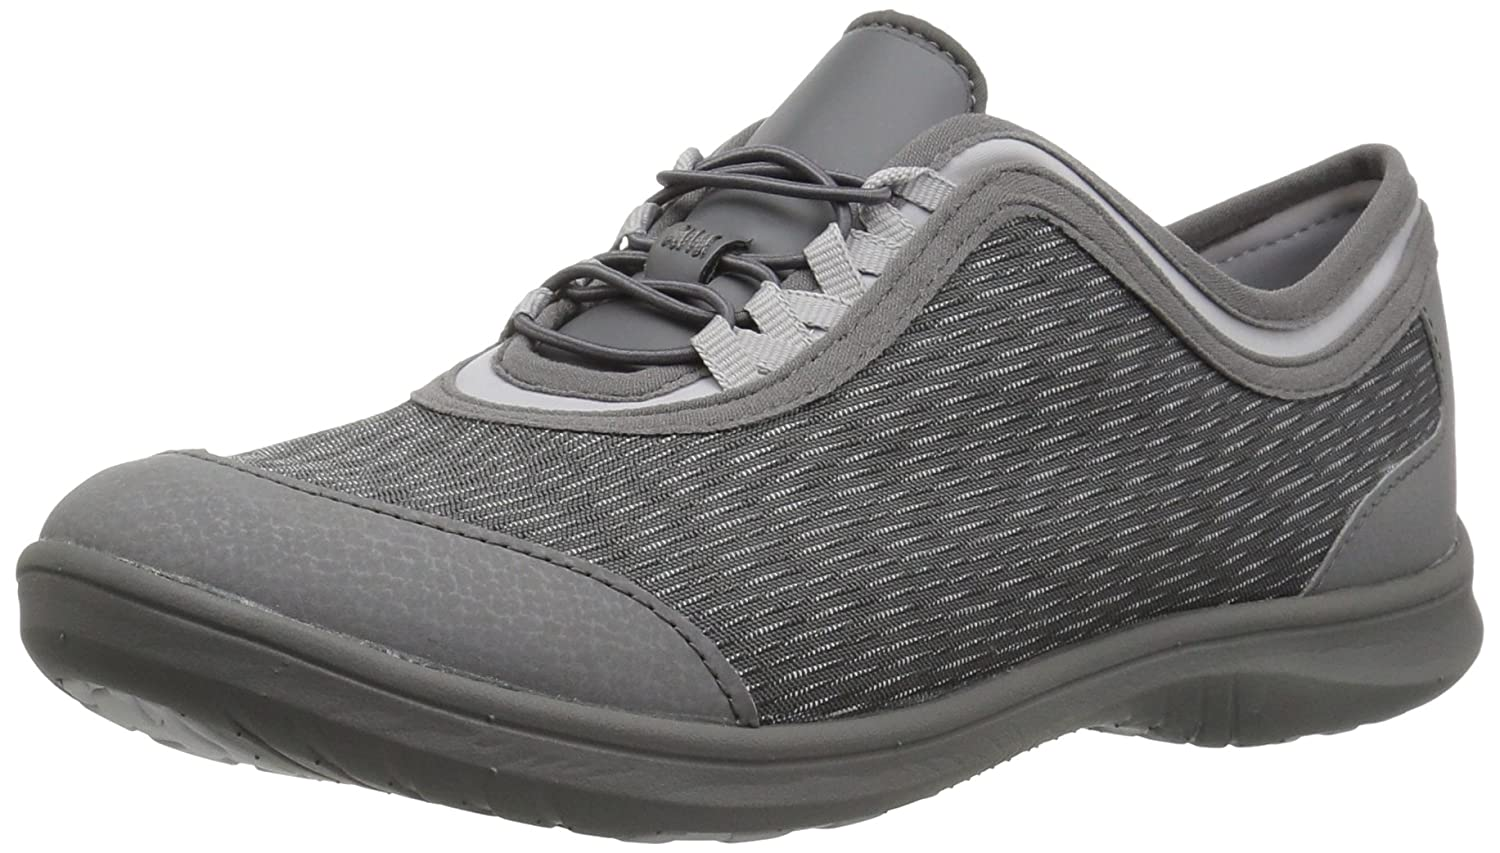 CLARKS Women's Dowling Pearl Walking Shoe B01MU0CGP5 8.5 B(M) US|Grey Synthetic